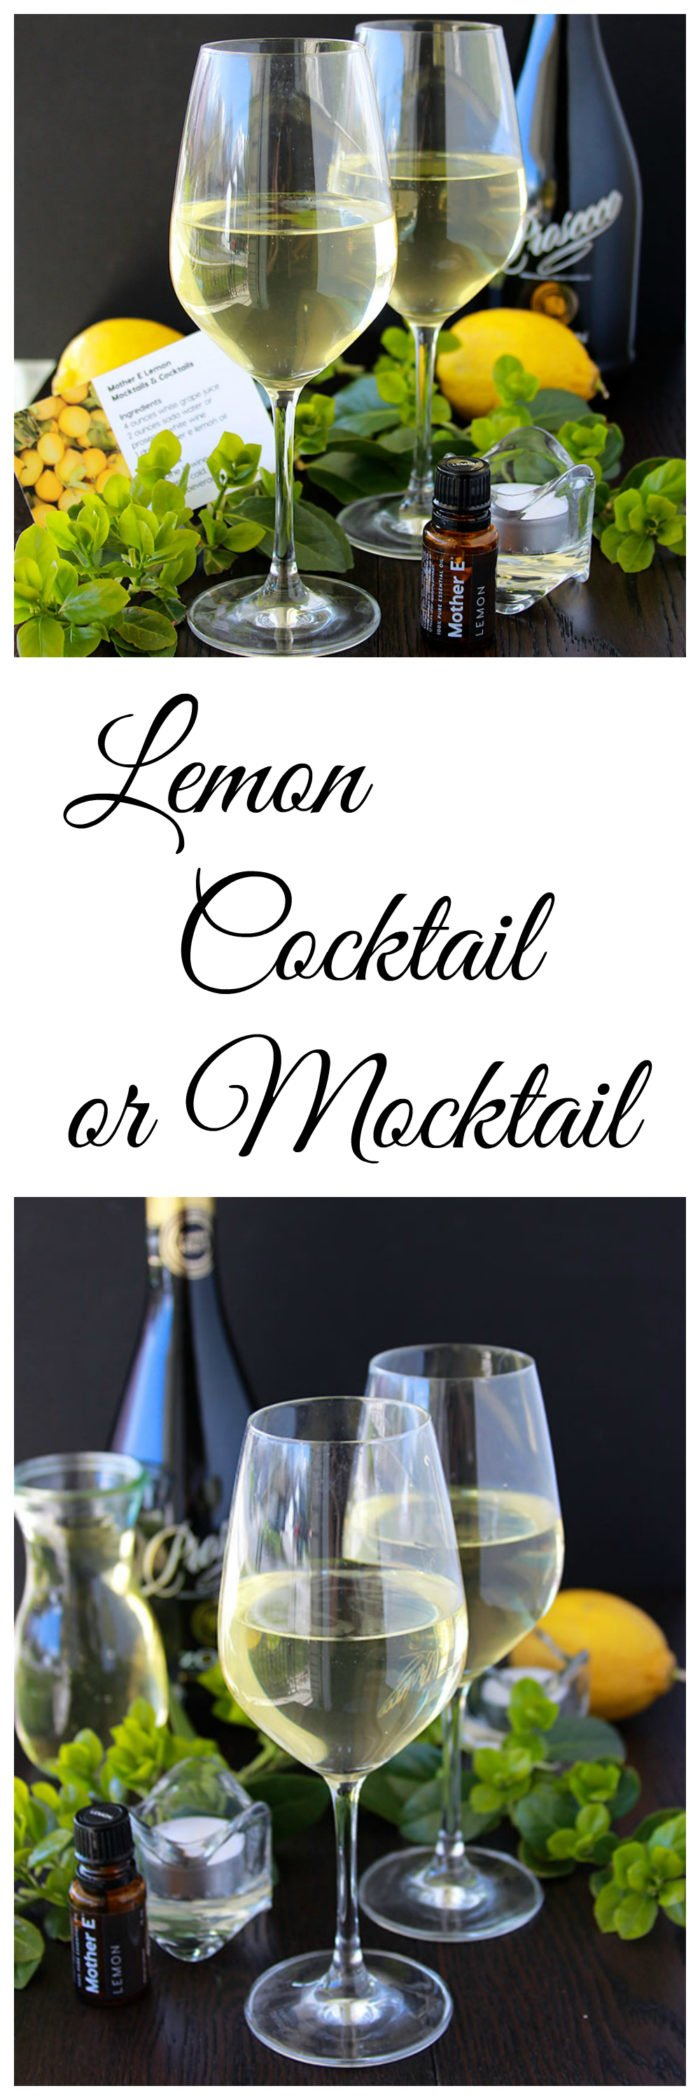 "Mother E Lemon Cocktail is a light and refreshing cocktail or mocktail! Plus The ""Keep Your Cool"" 30 Day Challenge!!"